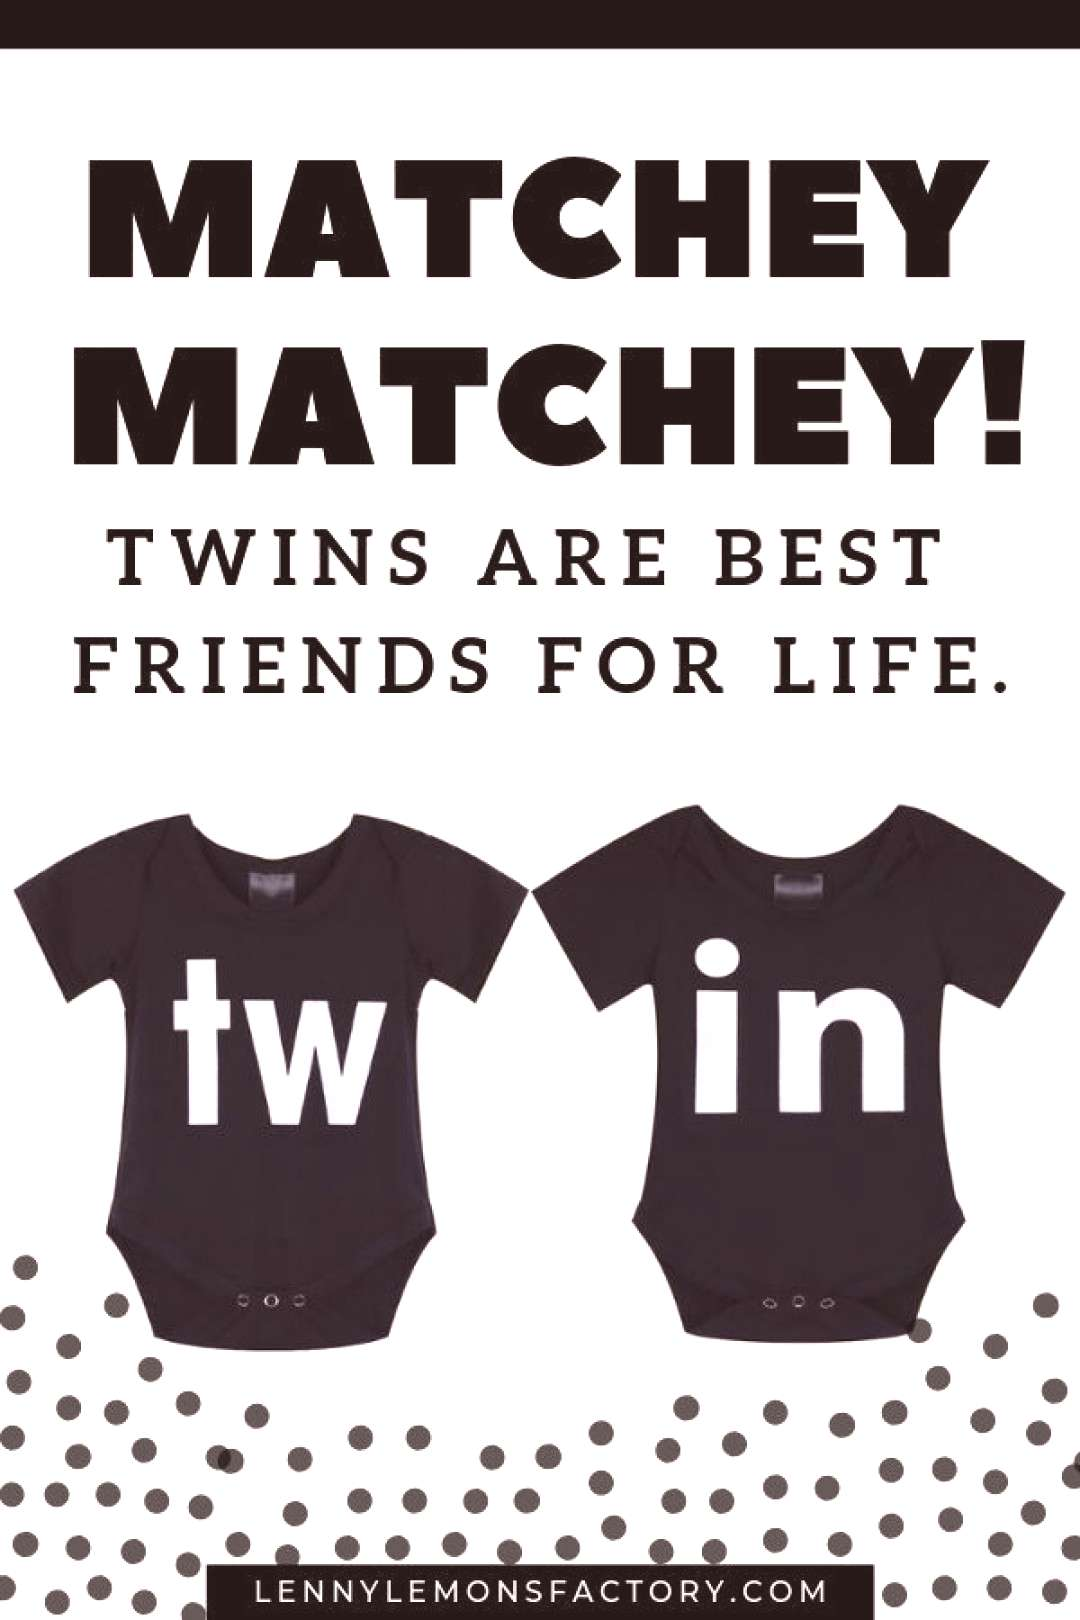 TWIN Onesies Matchey matchey! Twins are best friends for life. Onesies sold separately. Twins O